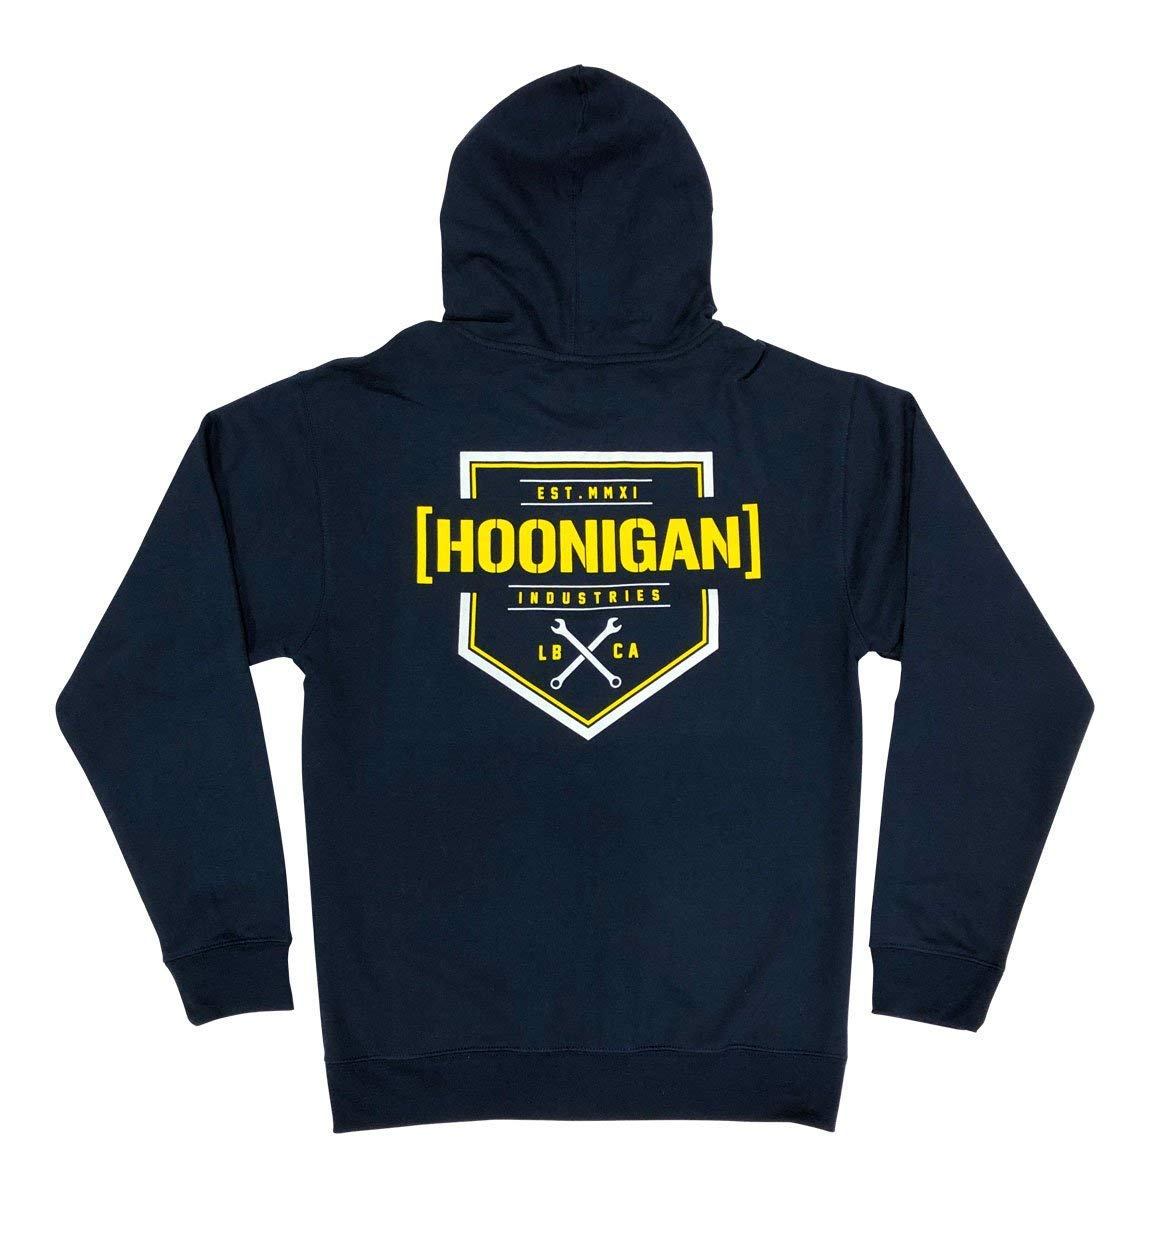 Hoonigan Bracket X Zip Hoodie | Perfect for Car and Drifting Enthusiasts, Mechanics and Gear Heads | Available in Small to 3X